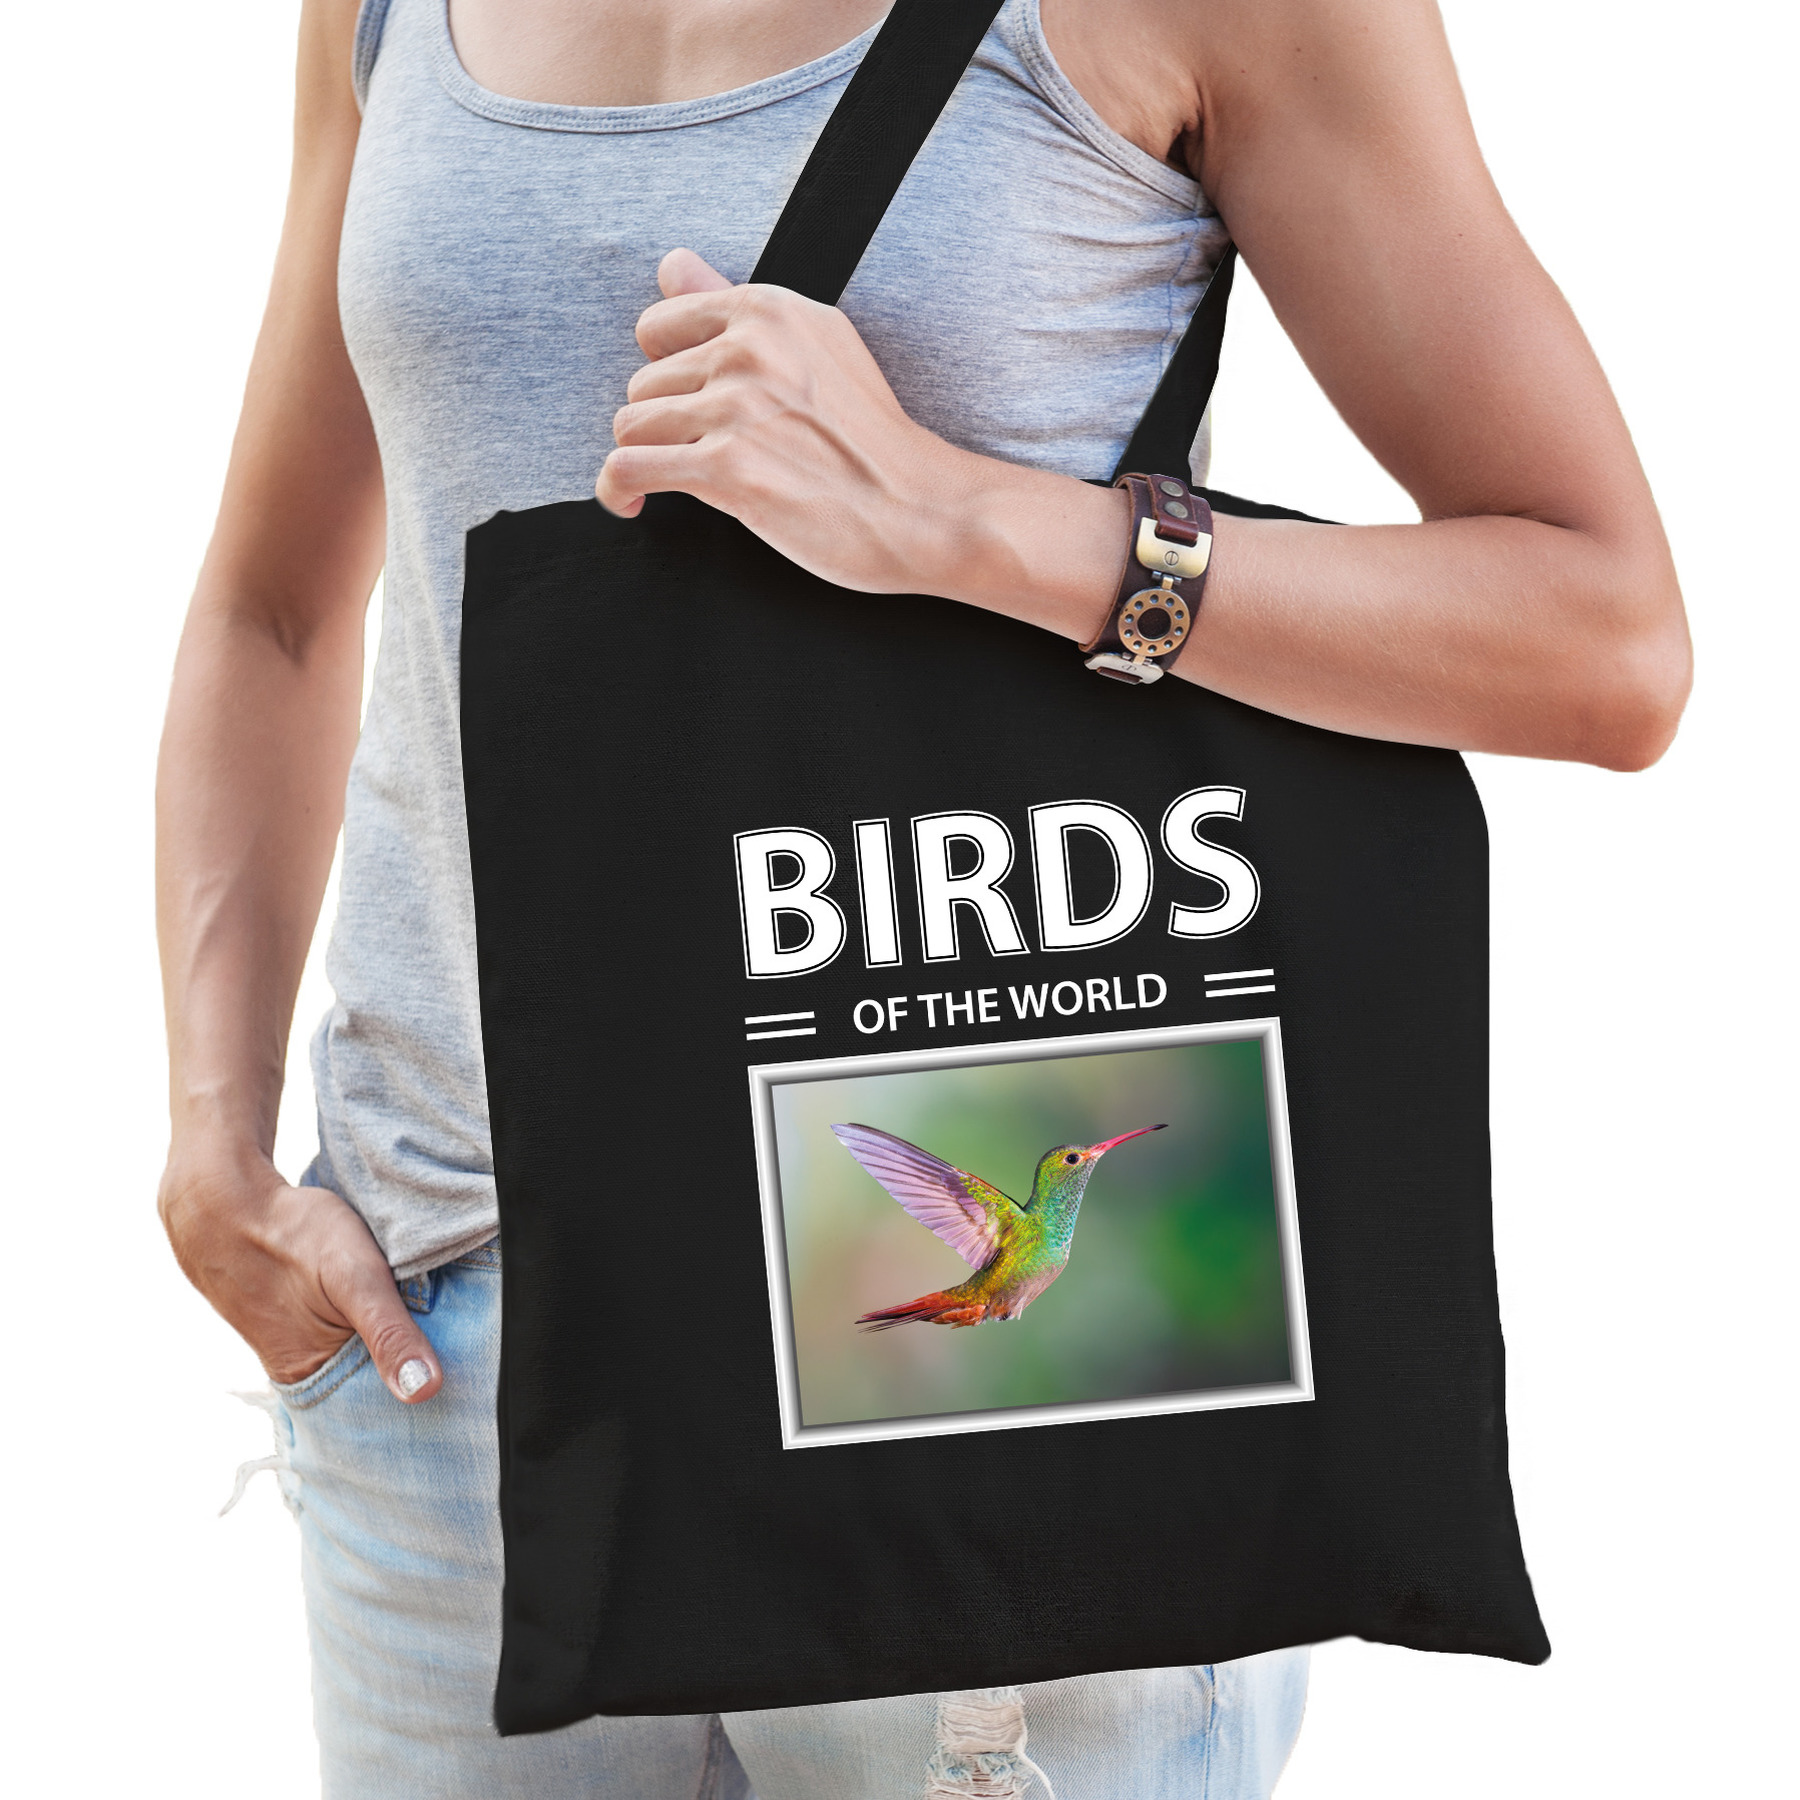 Katoenen tasje Kolibries vogels zwart - birds of the world Kolibrie cadeau tas